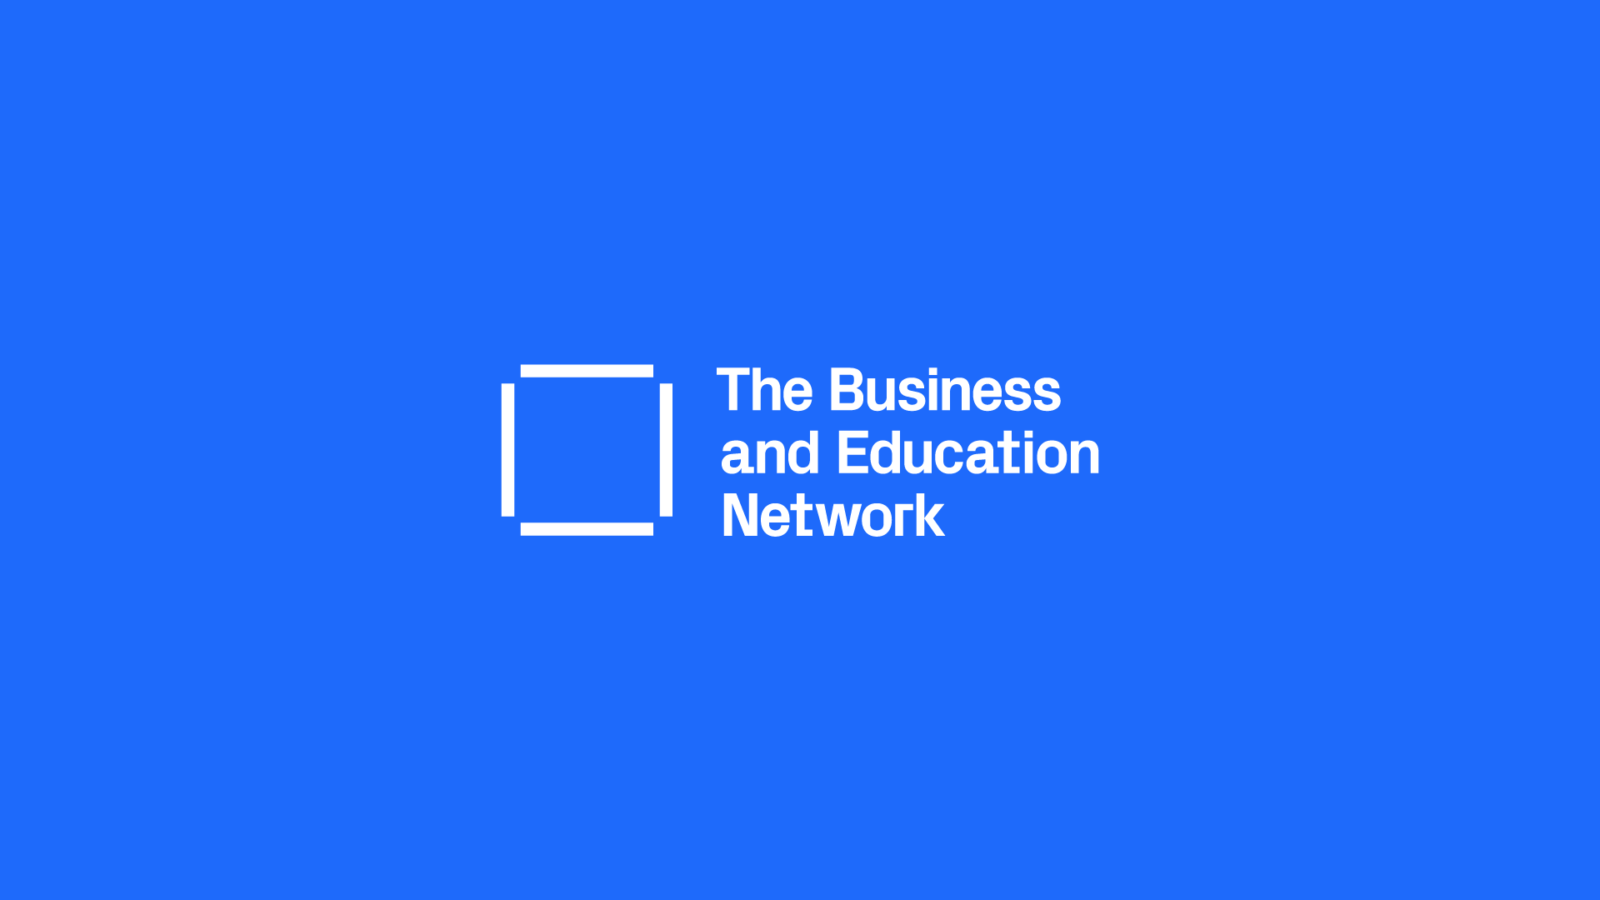 The Business and Education Network